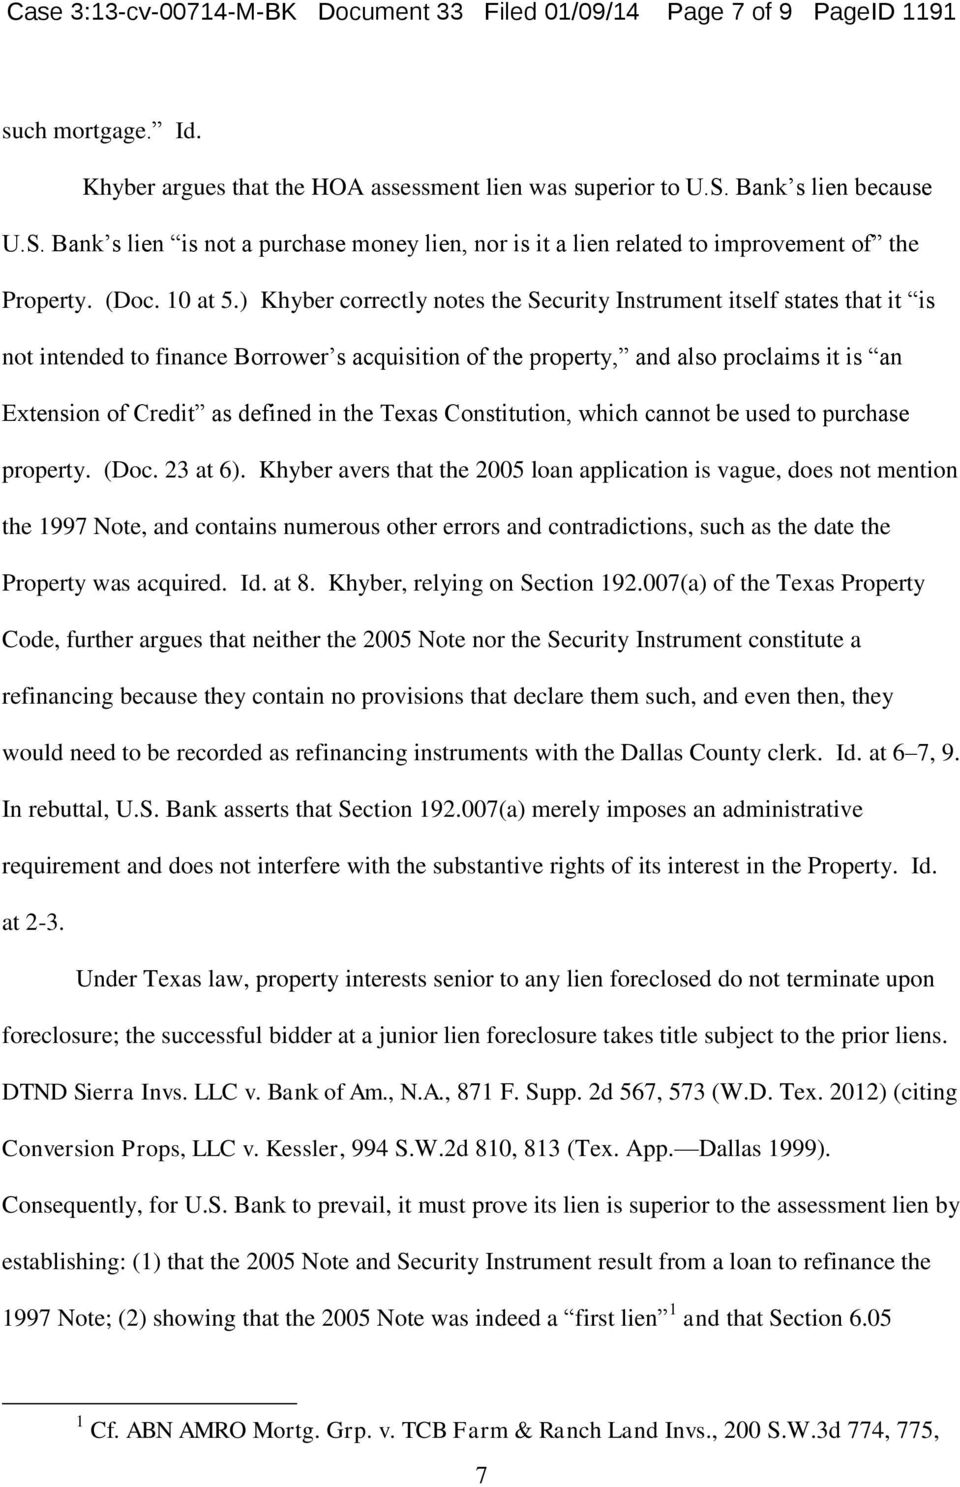 ) Khyber correctly notes the Security Instrument itself states that it is not intended to finance Borrower s acquisition of the property, and also proclaims it is an Extension of Credit as defined in